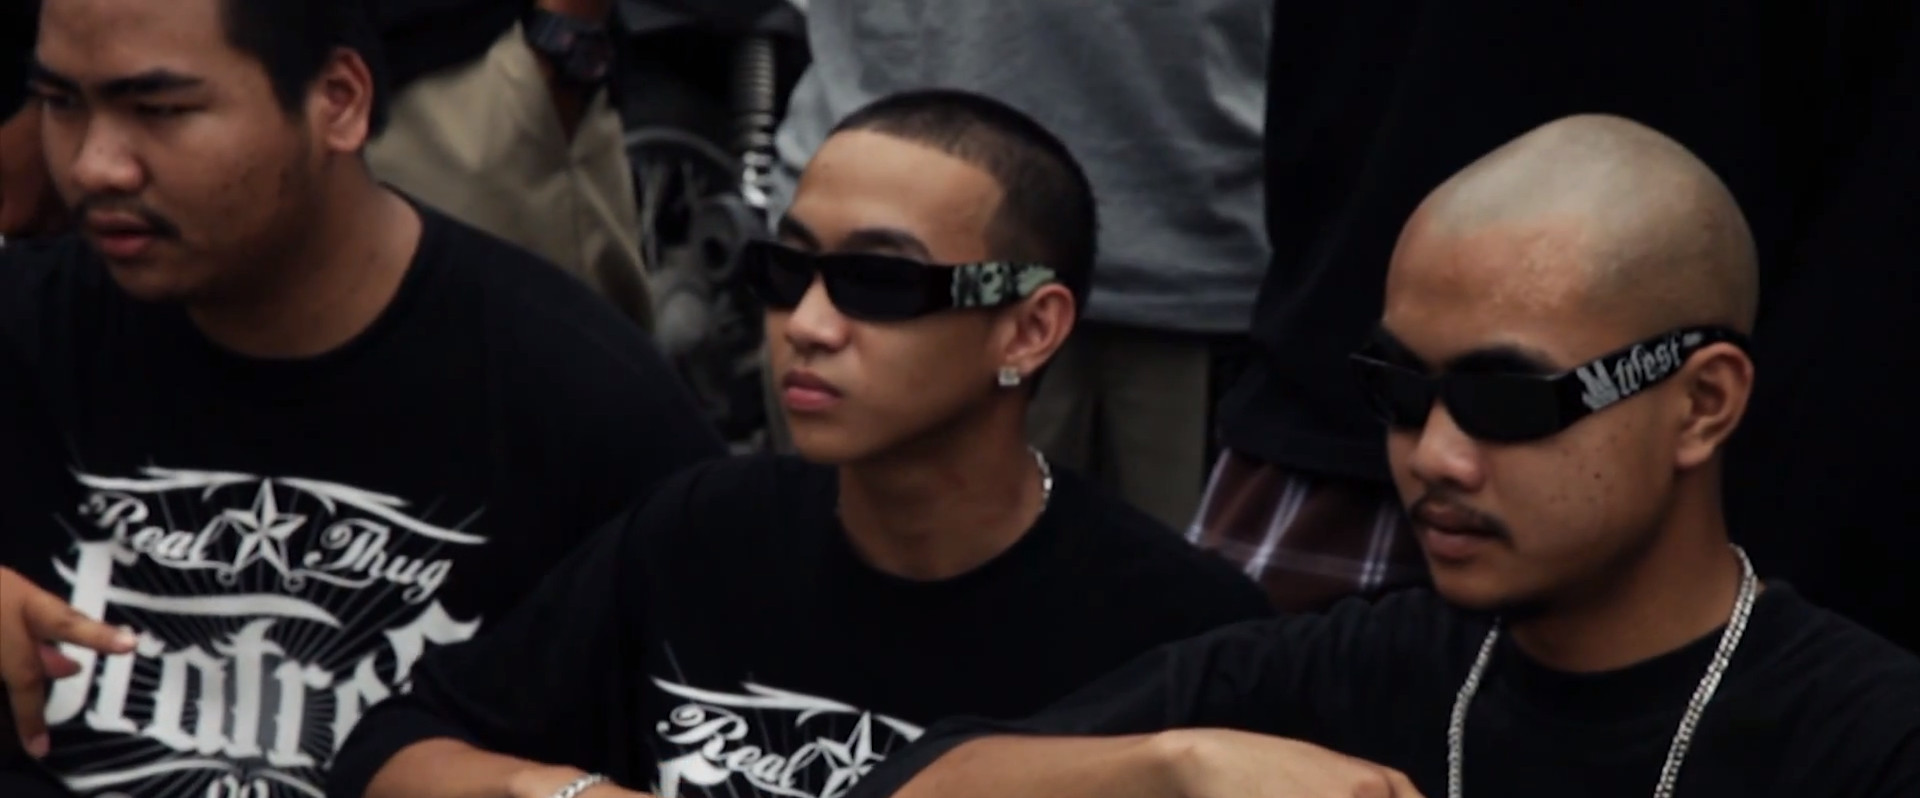 These Men In Thailand Copy The Mexican Gangster Culture Its Quite 1920x798